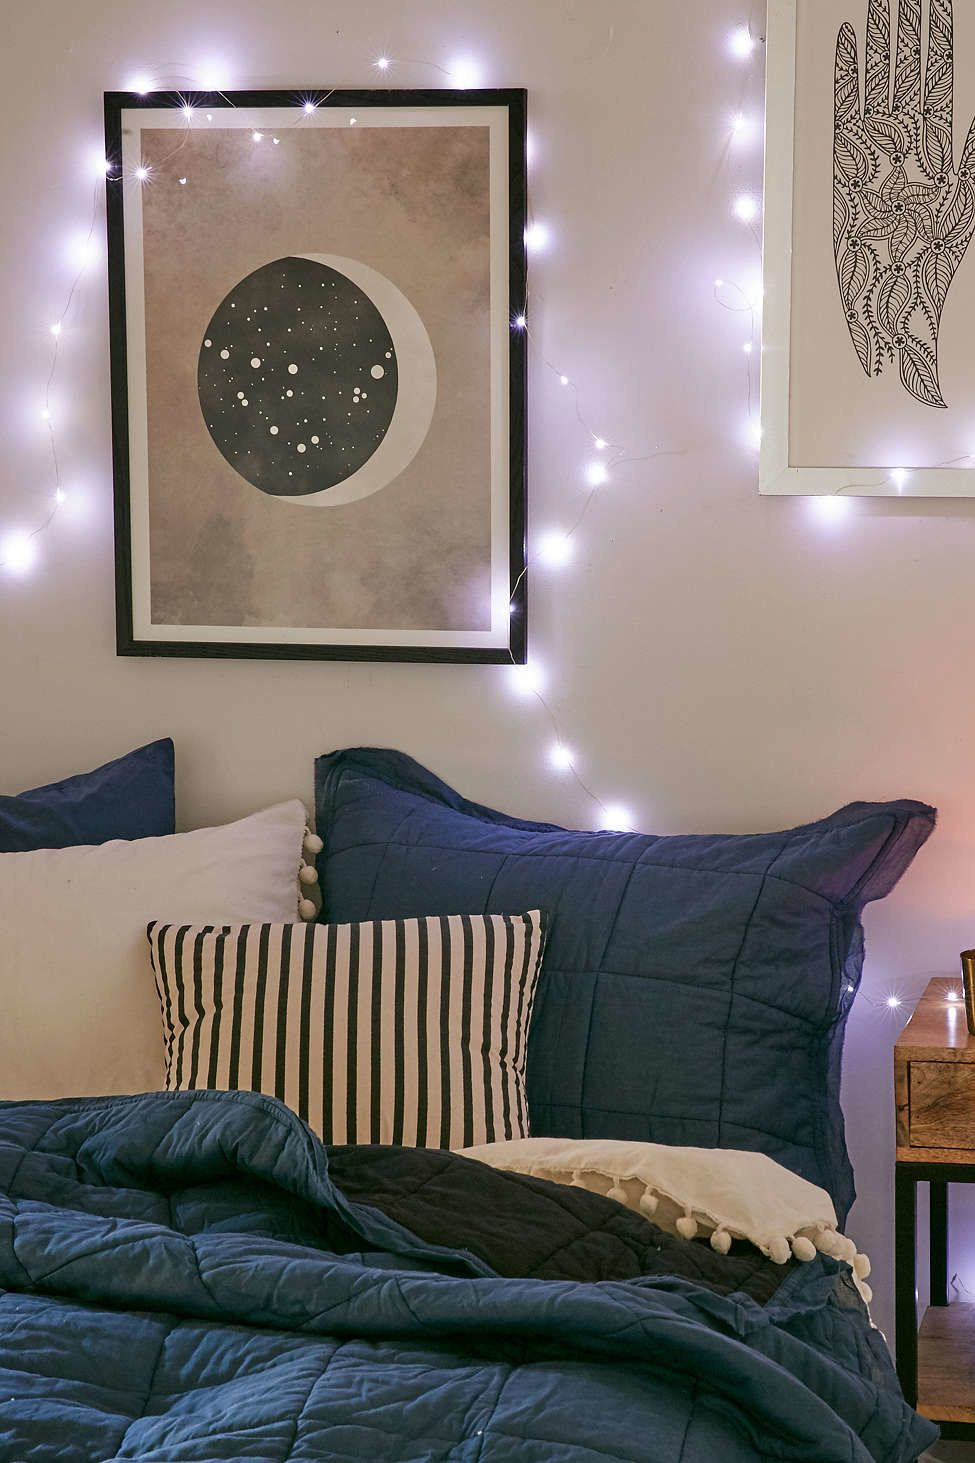 Firefly lights will make your canopy enchantingly ethereal